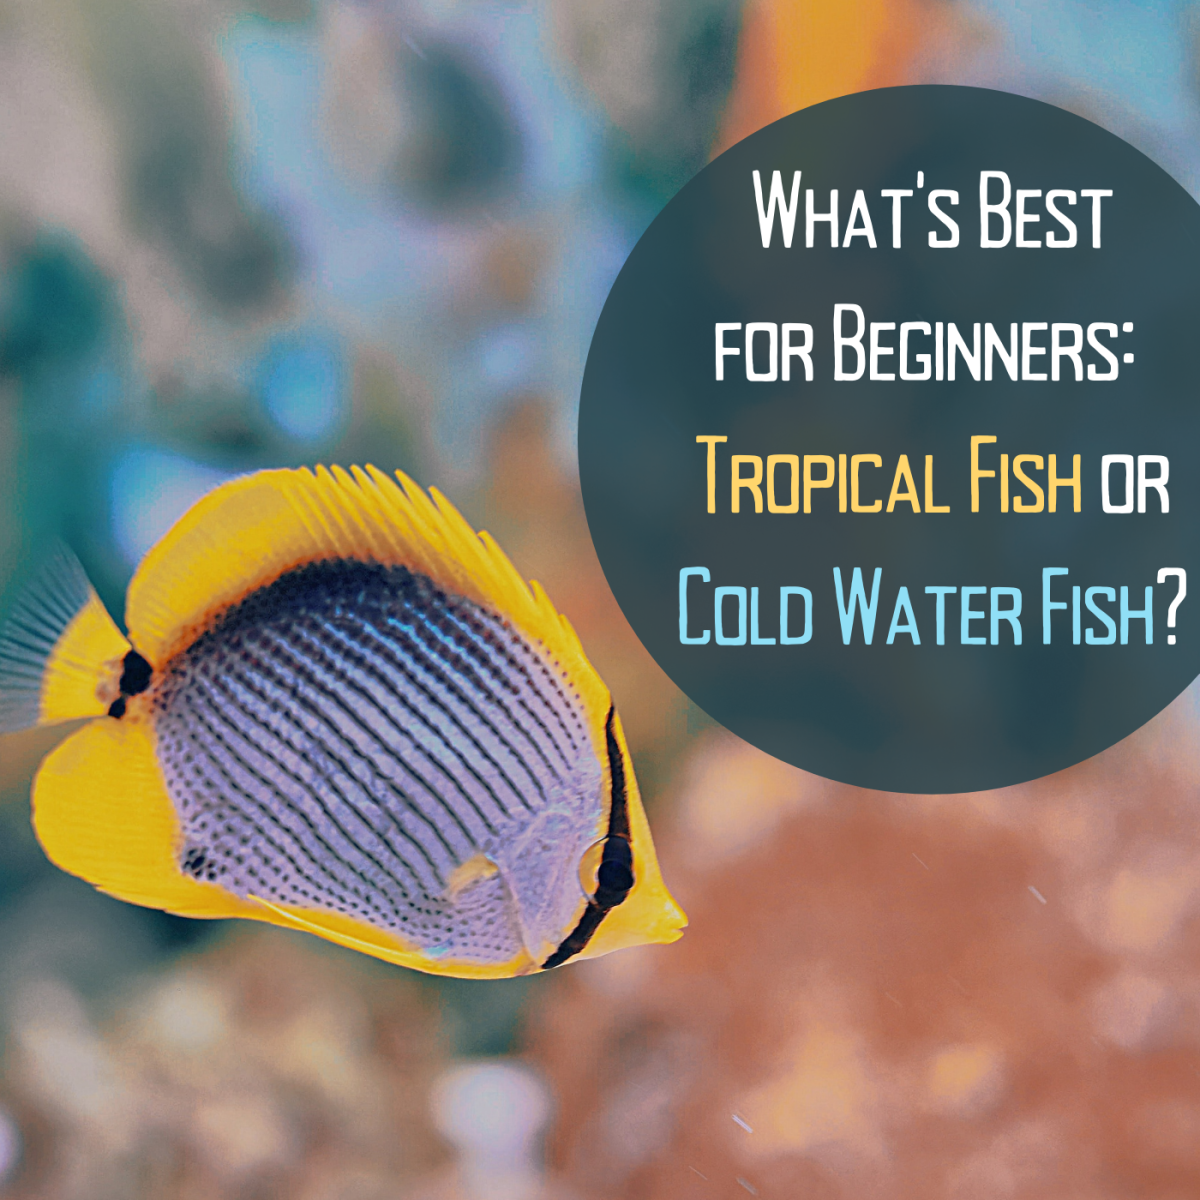 If you're new to fish-keeping, get some advice on where to start. You may be surprised by the answer (tropical fish)!